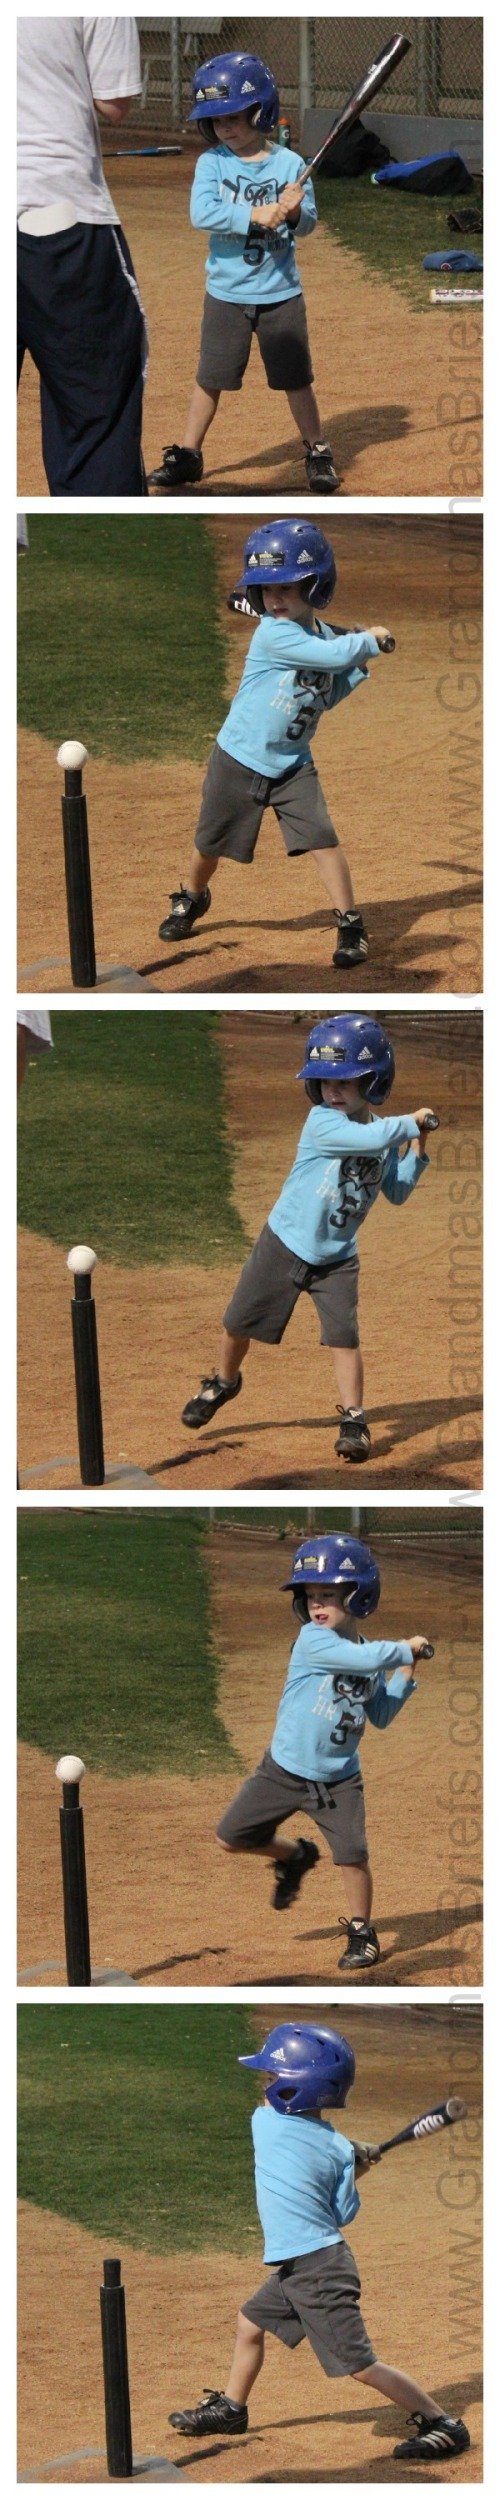 Lefty T-ball hit